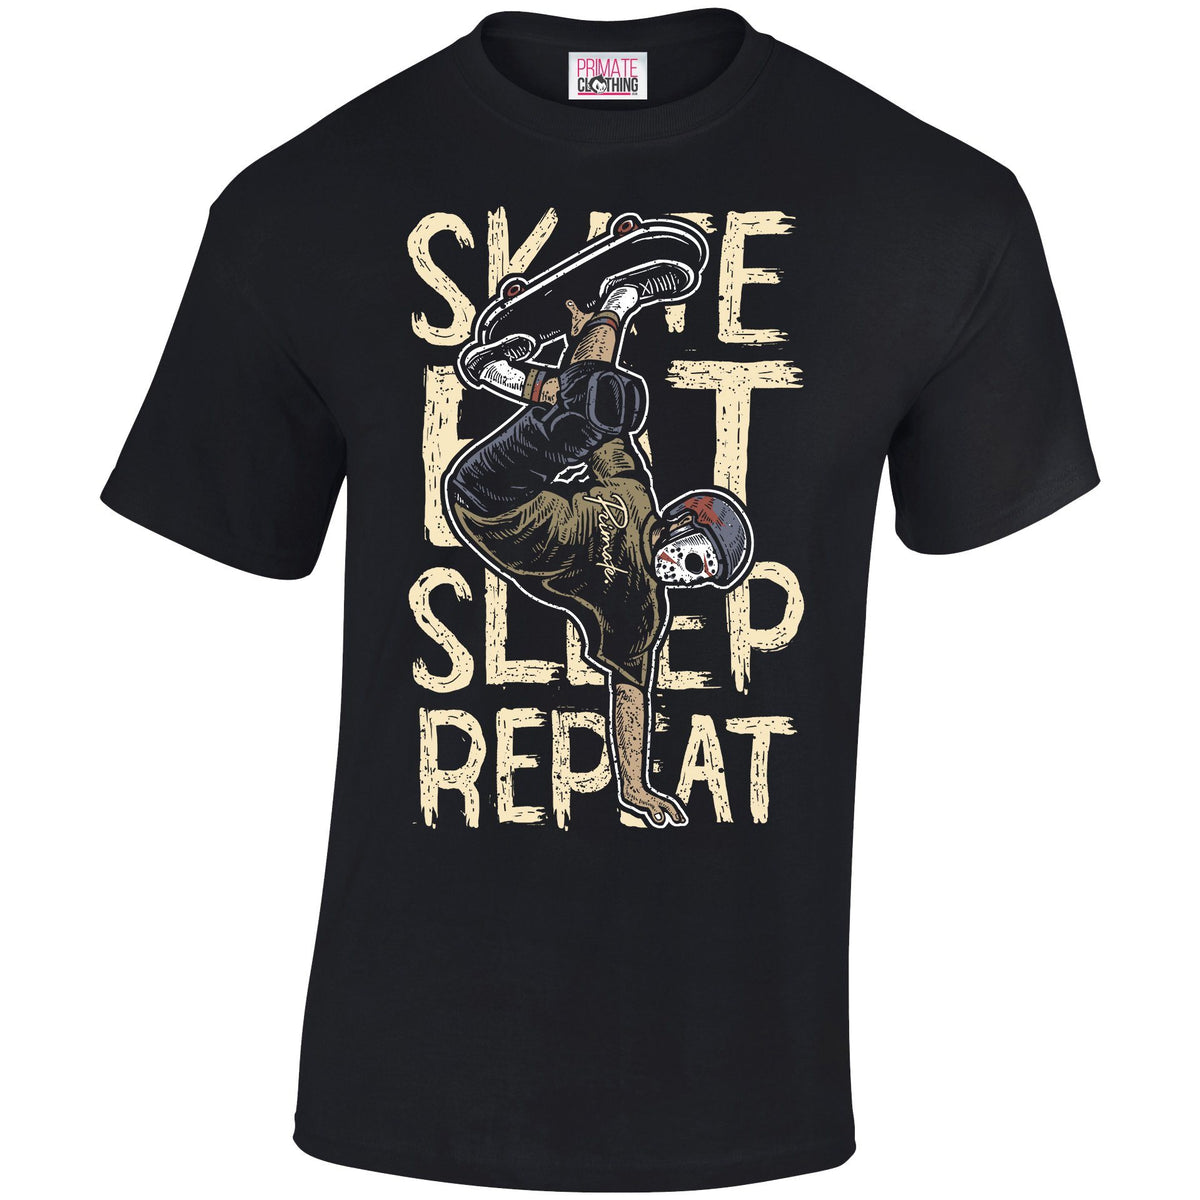 Skate Eat Sleep Repeat - T-Shirt Primate. Fashion Unisex: Small